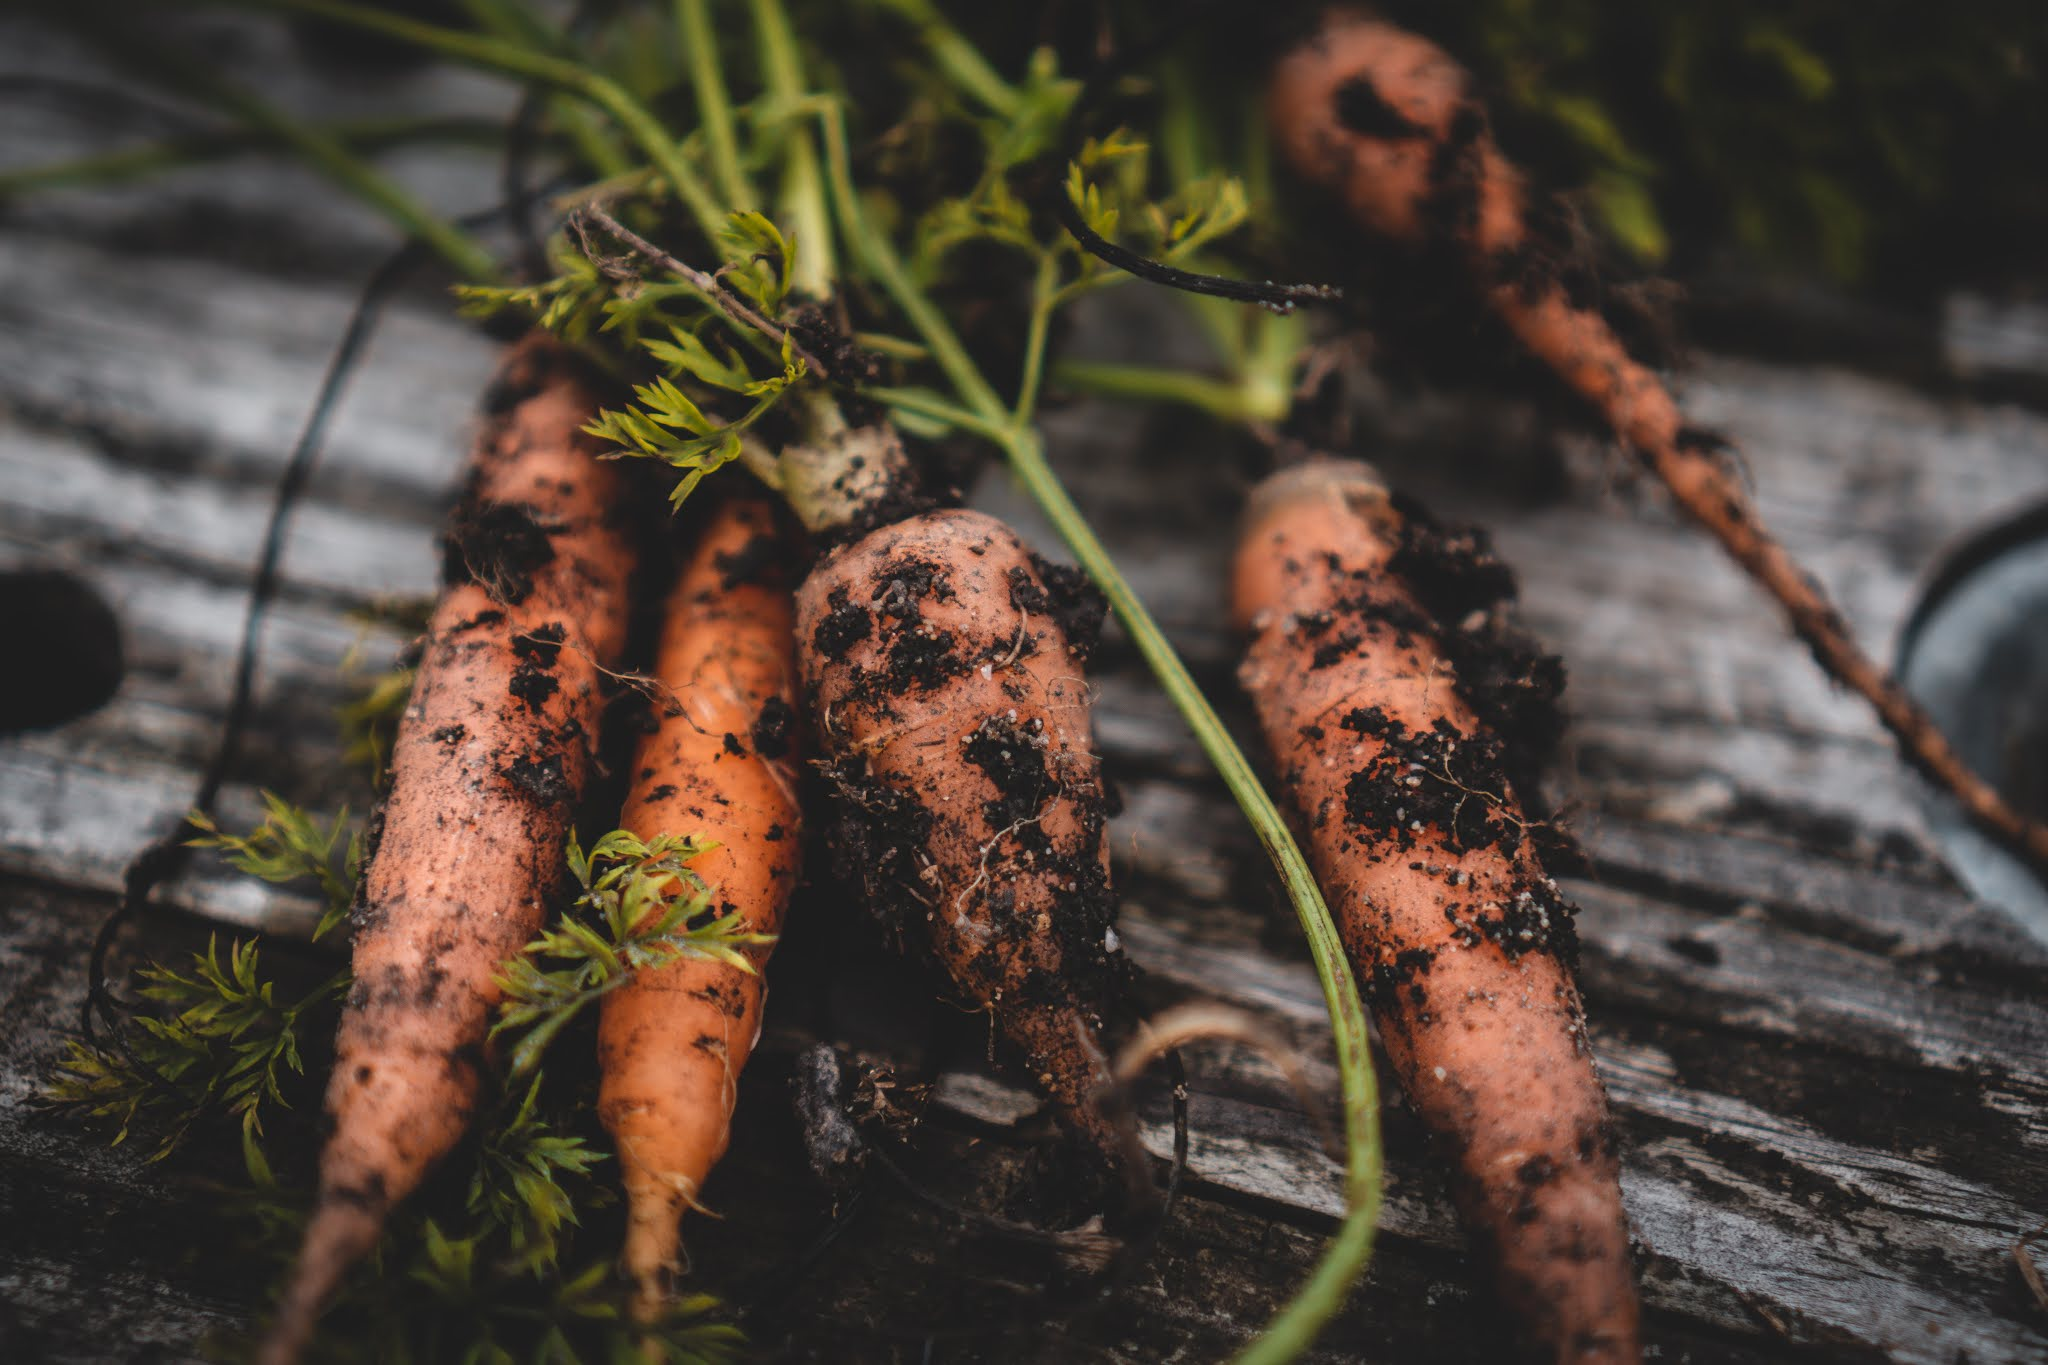 Harvesting and storing carrots